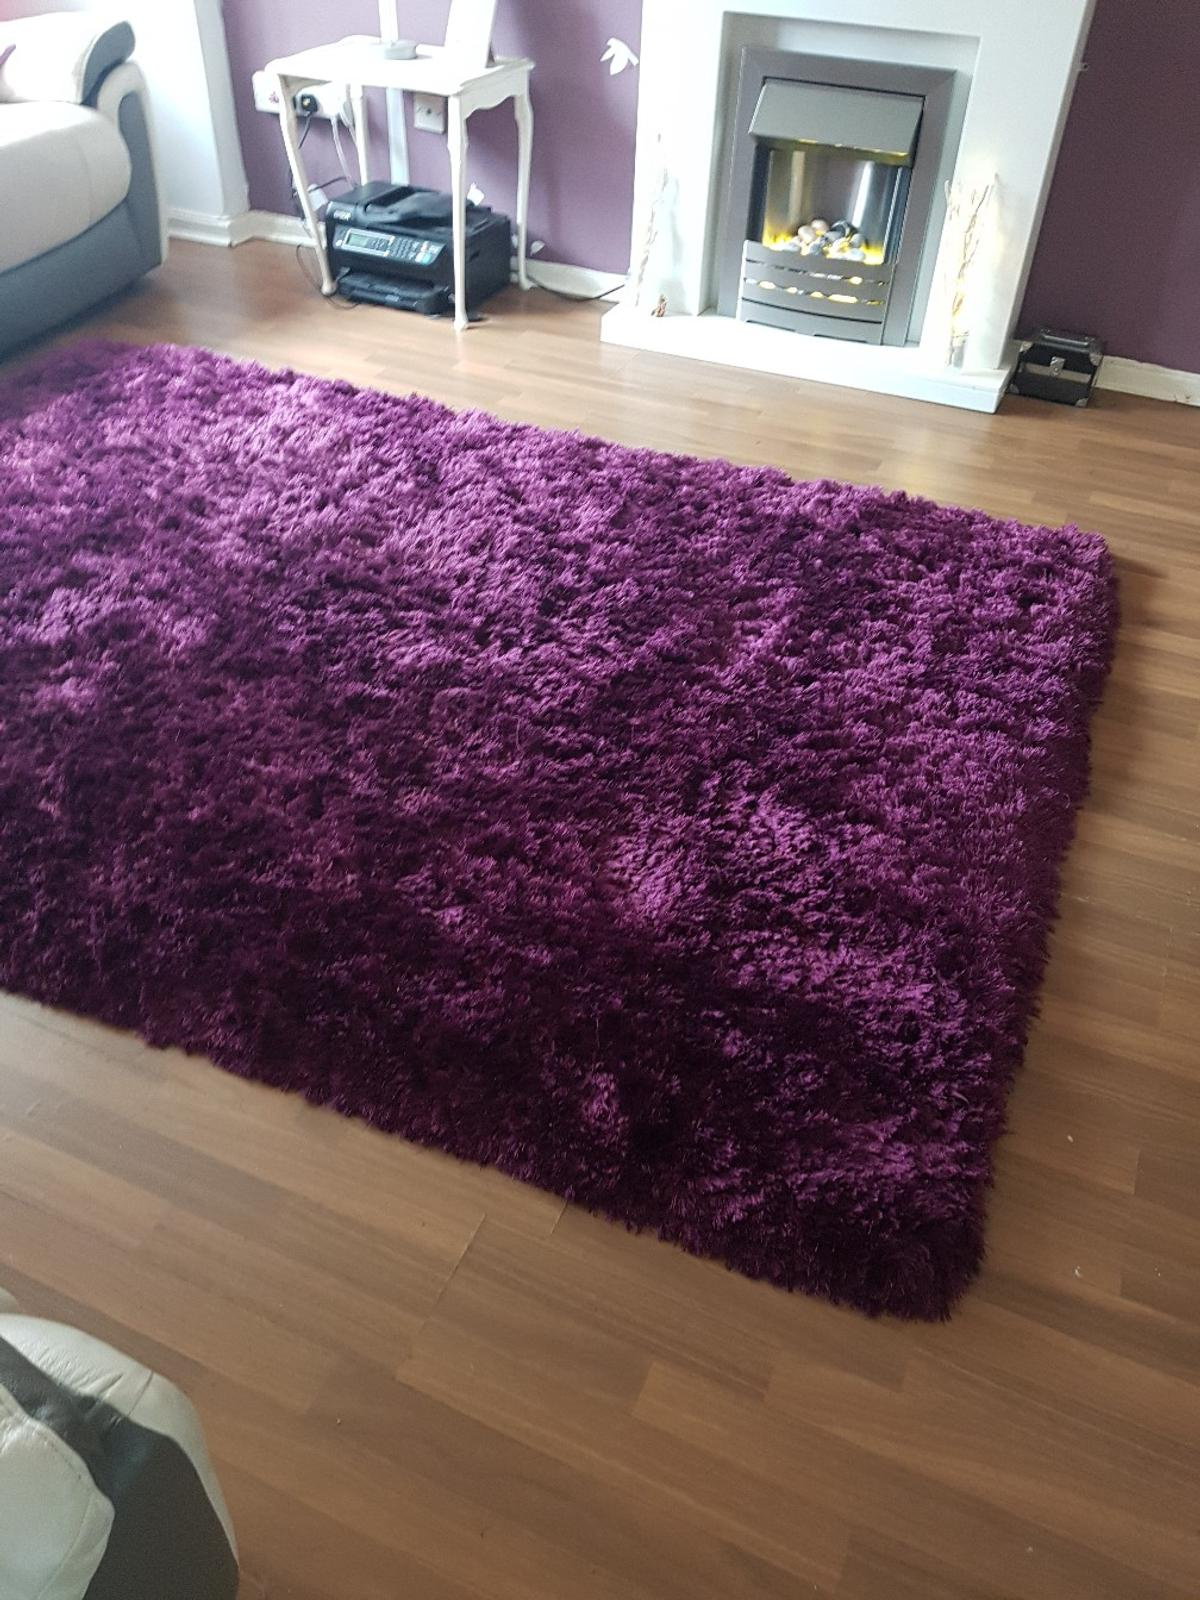 Large Luxury Shaggy Rug In Plum Colour